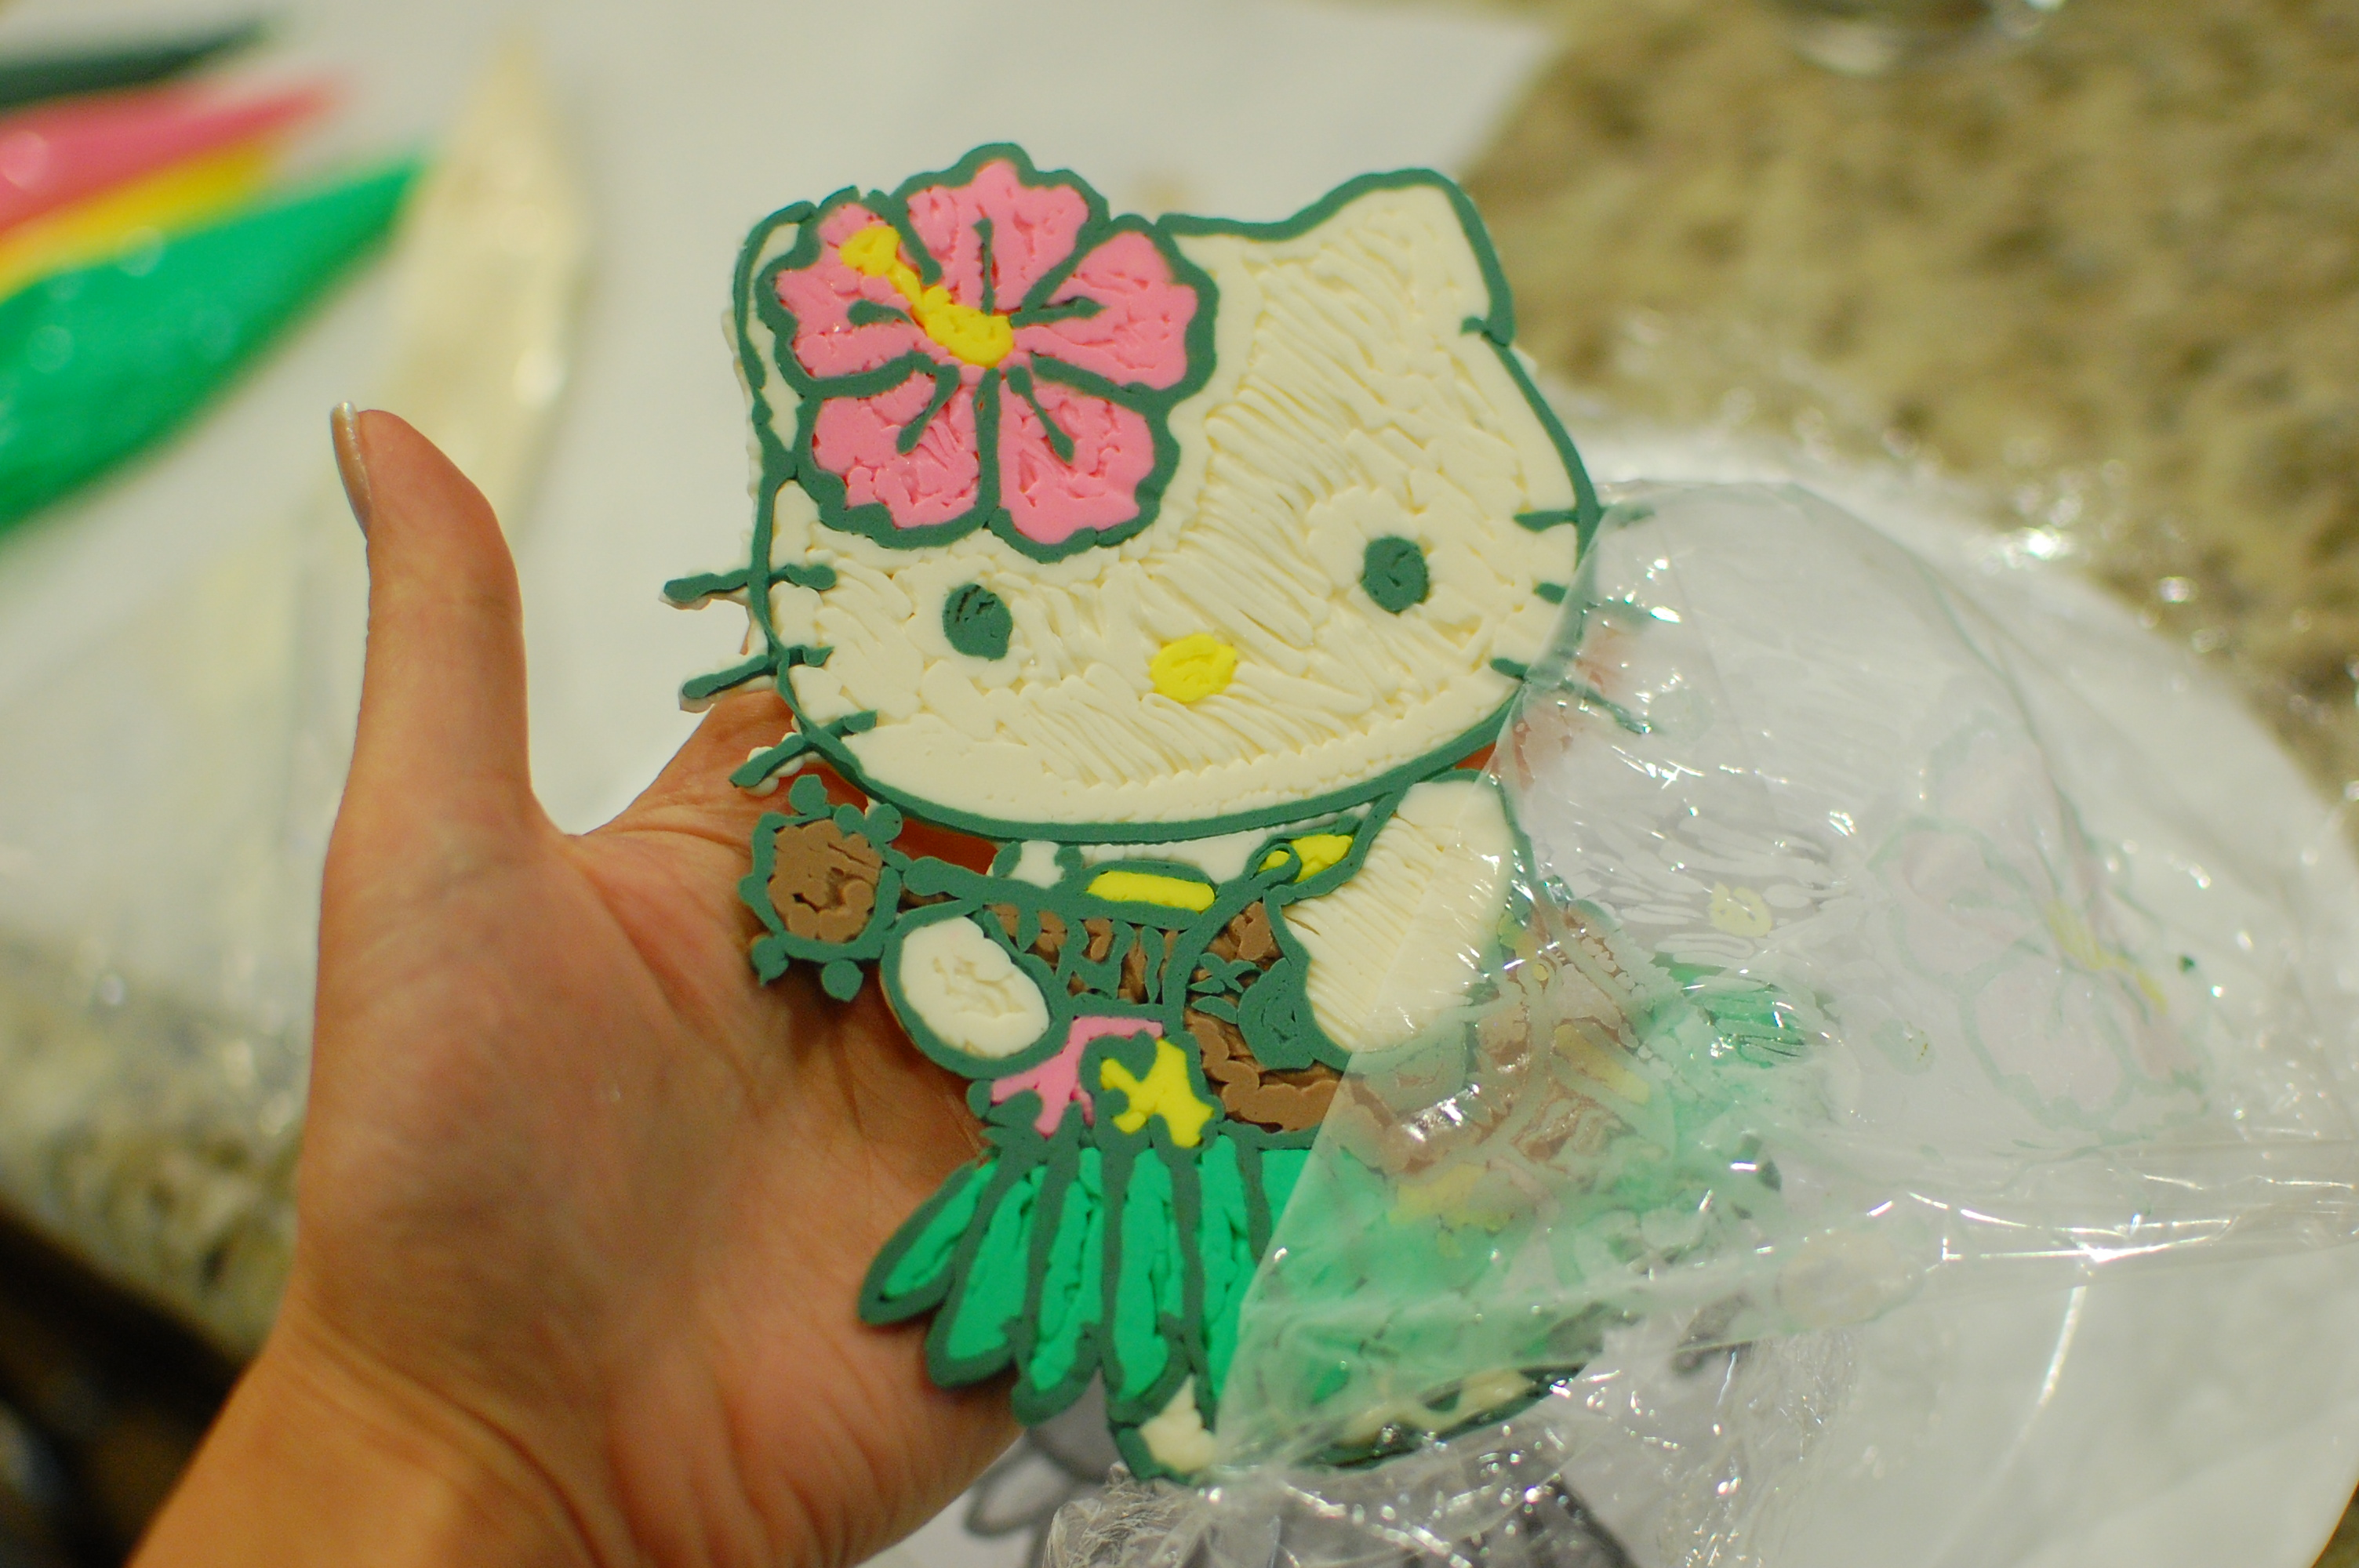 Cake Decorating With Chocolate Transfers : Hello Kitty Cake (how to make frosting transfers for easy ...